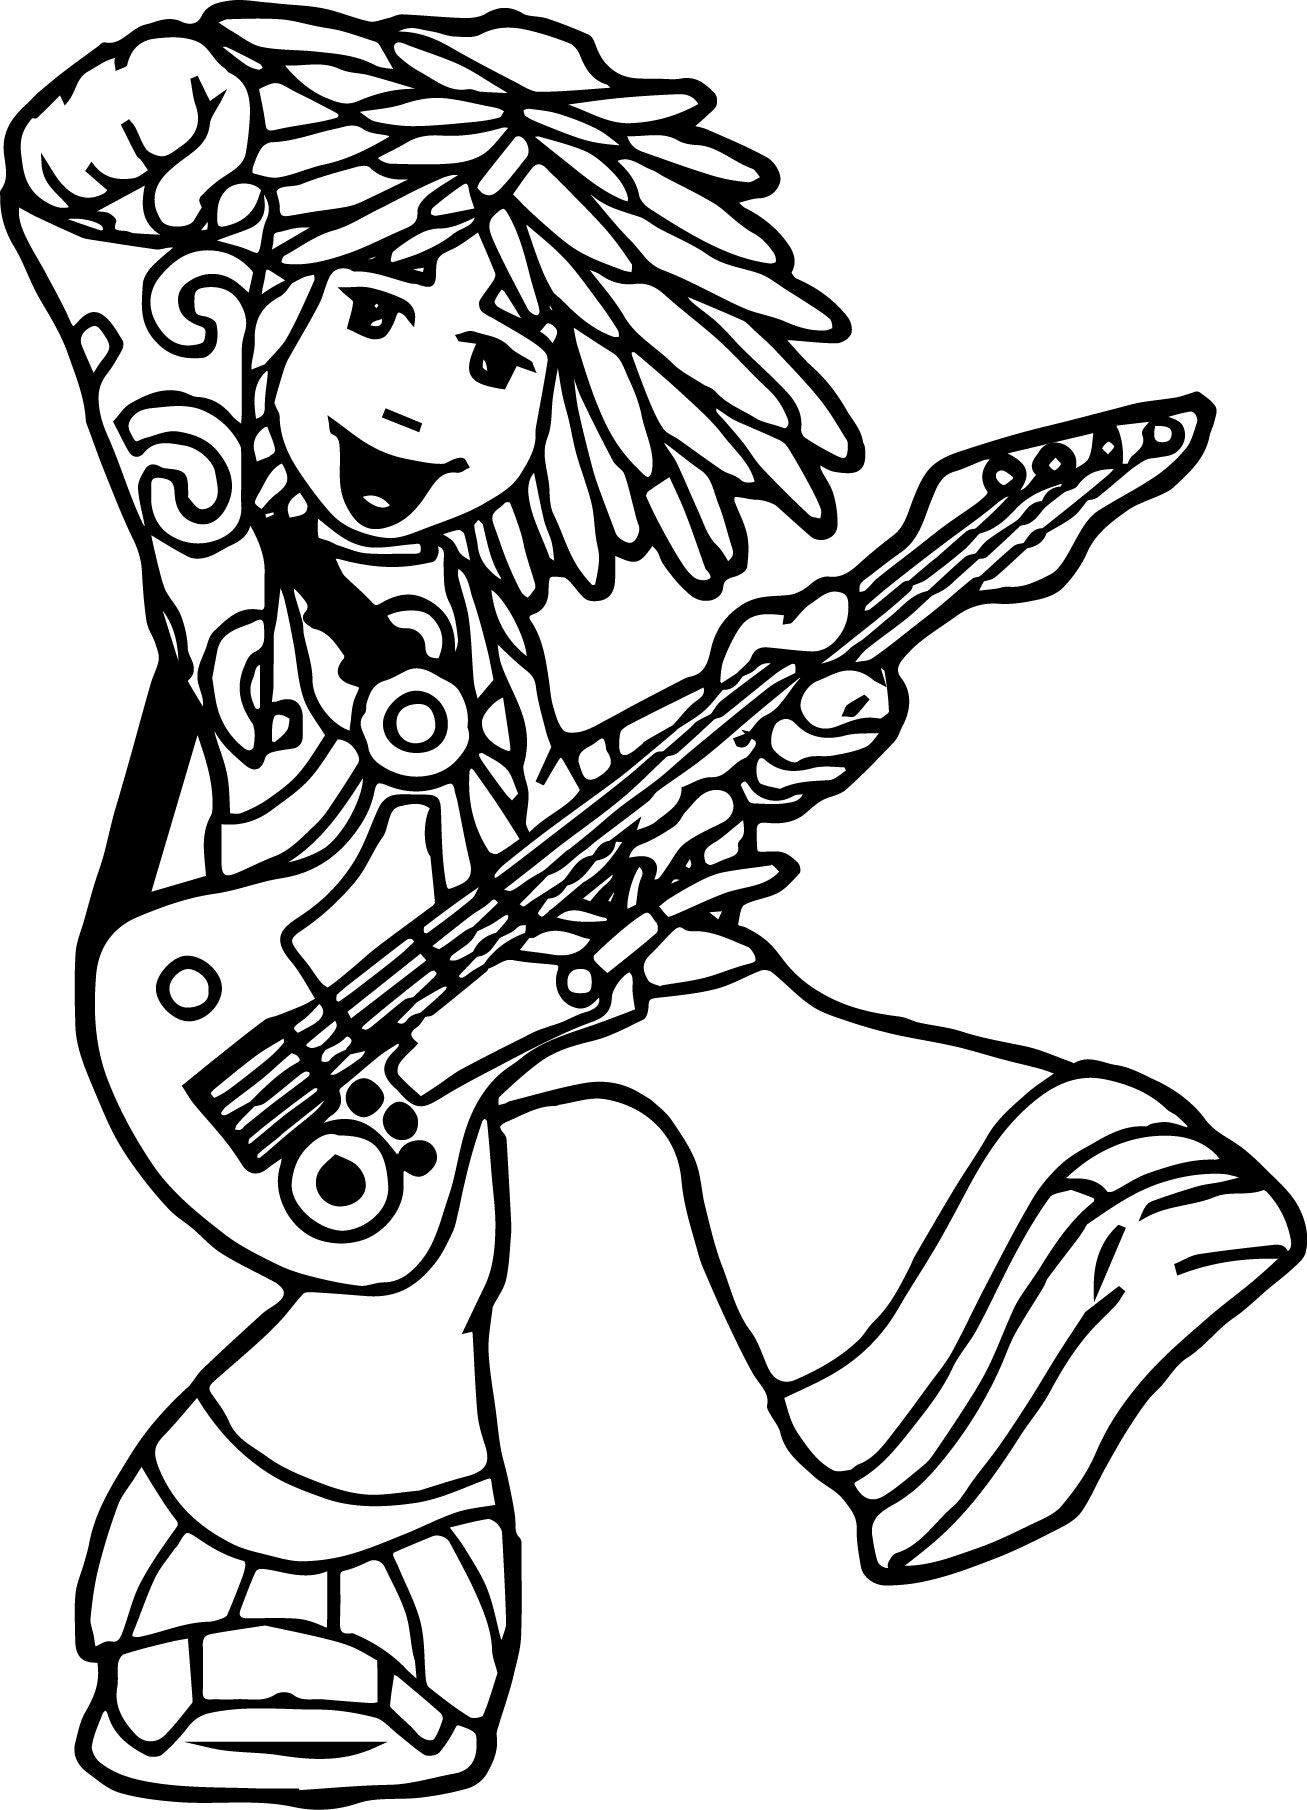 The Doodlebops Coloring Pages | wecoloringpage | Pinterest